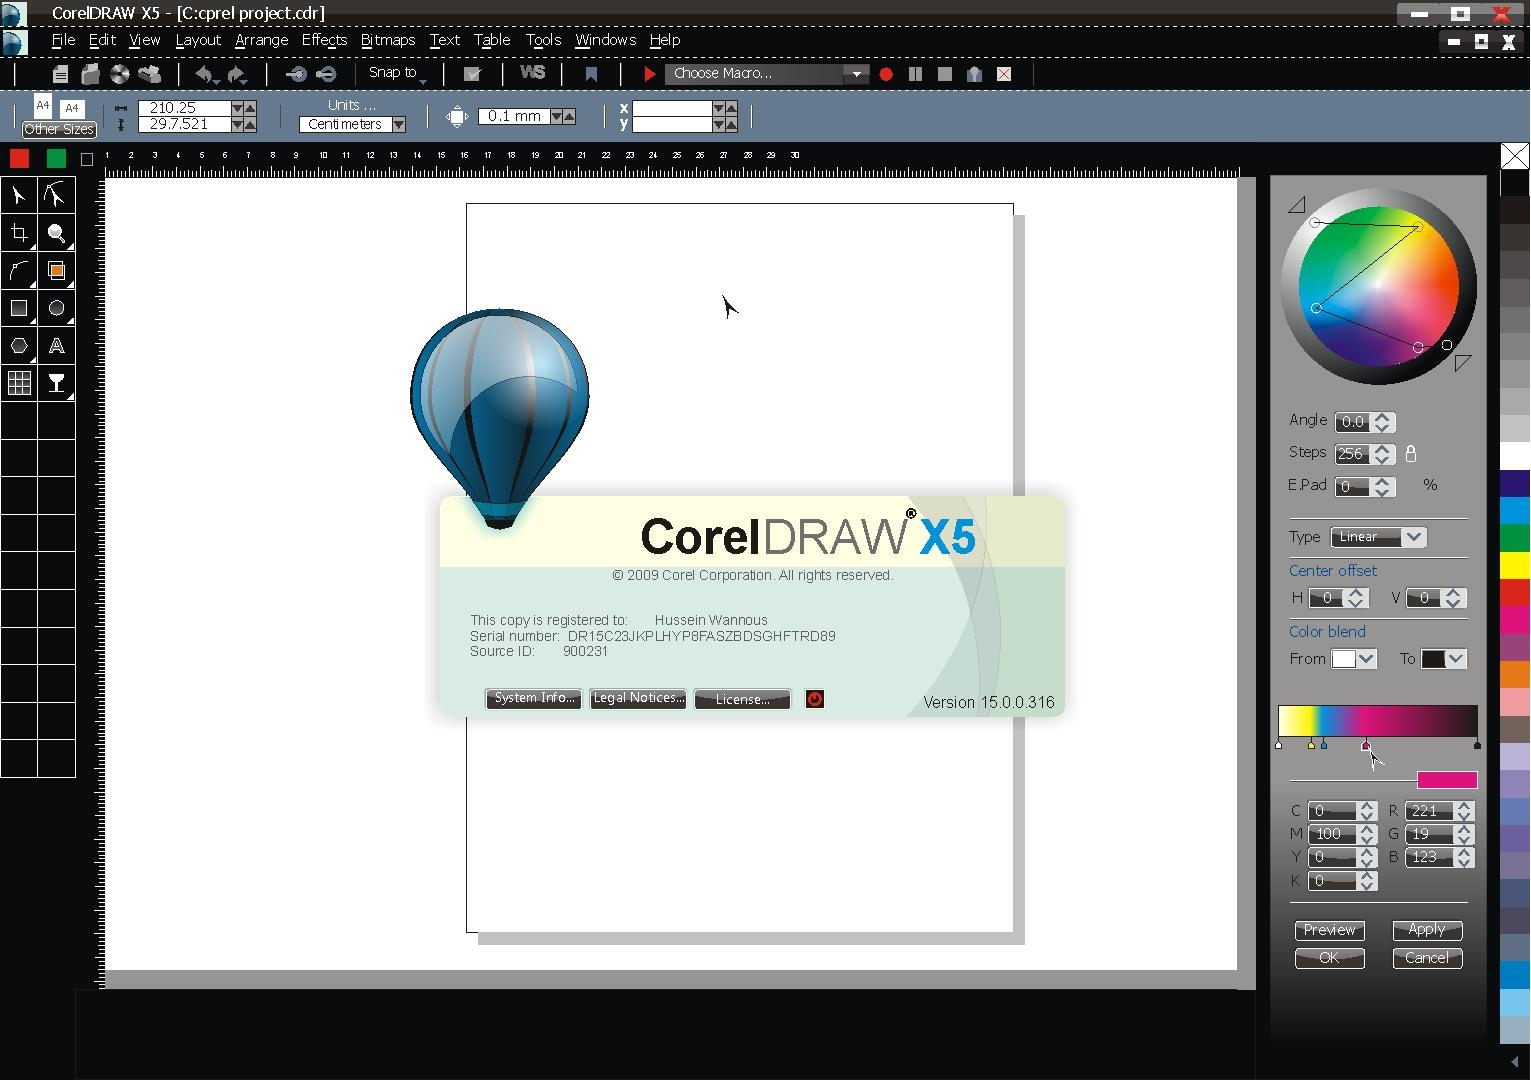 Corel draw version - Corel X5 2 Jpg